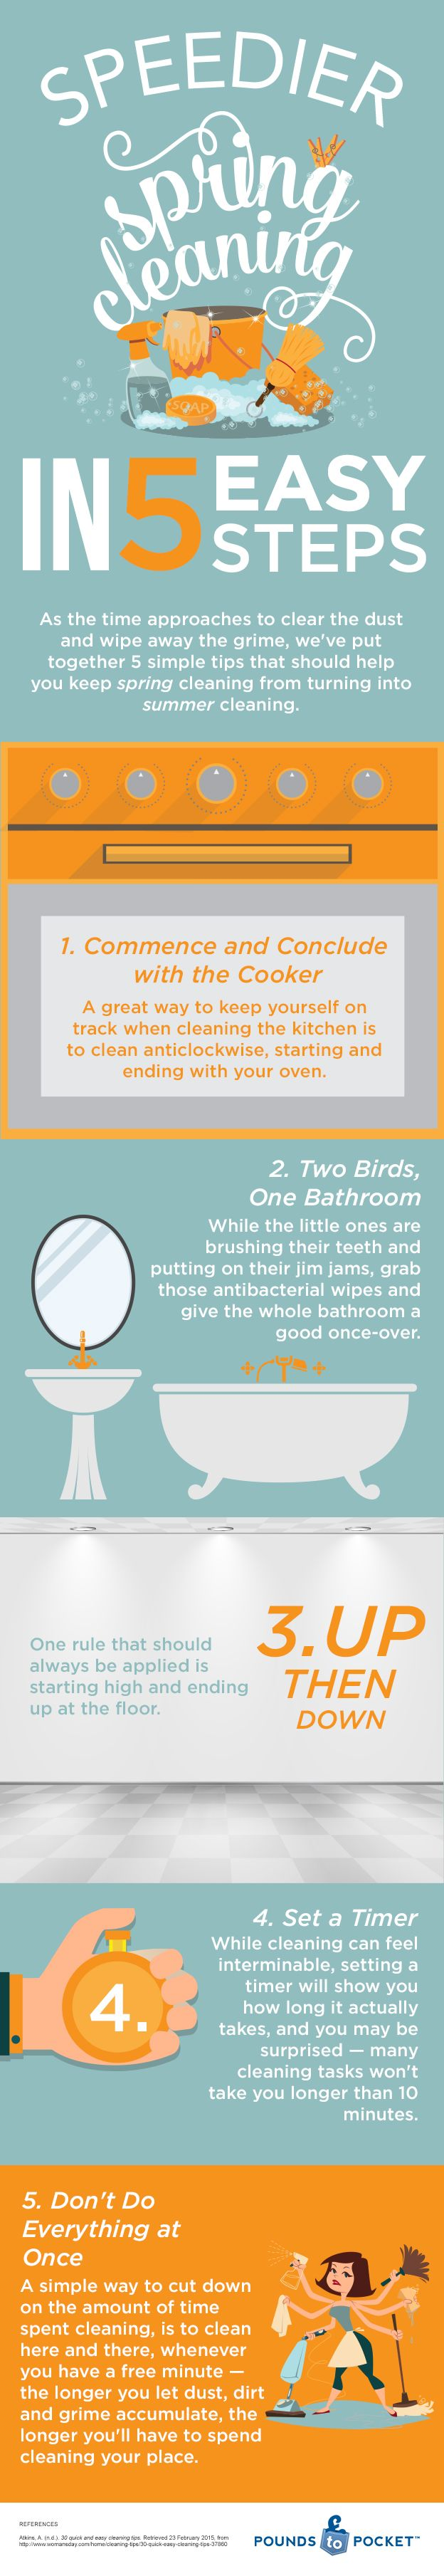 speedier spring cleaning in 5 easy steps infographic visualistan